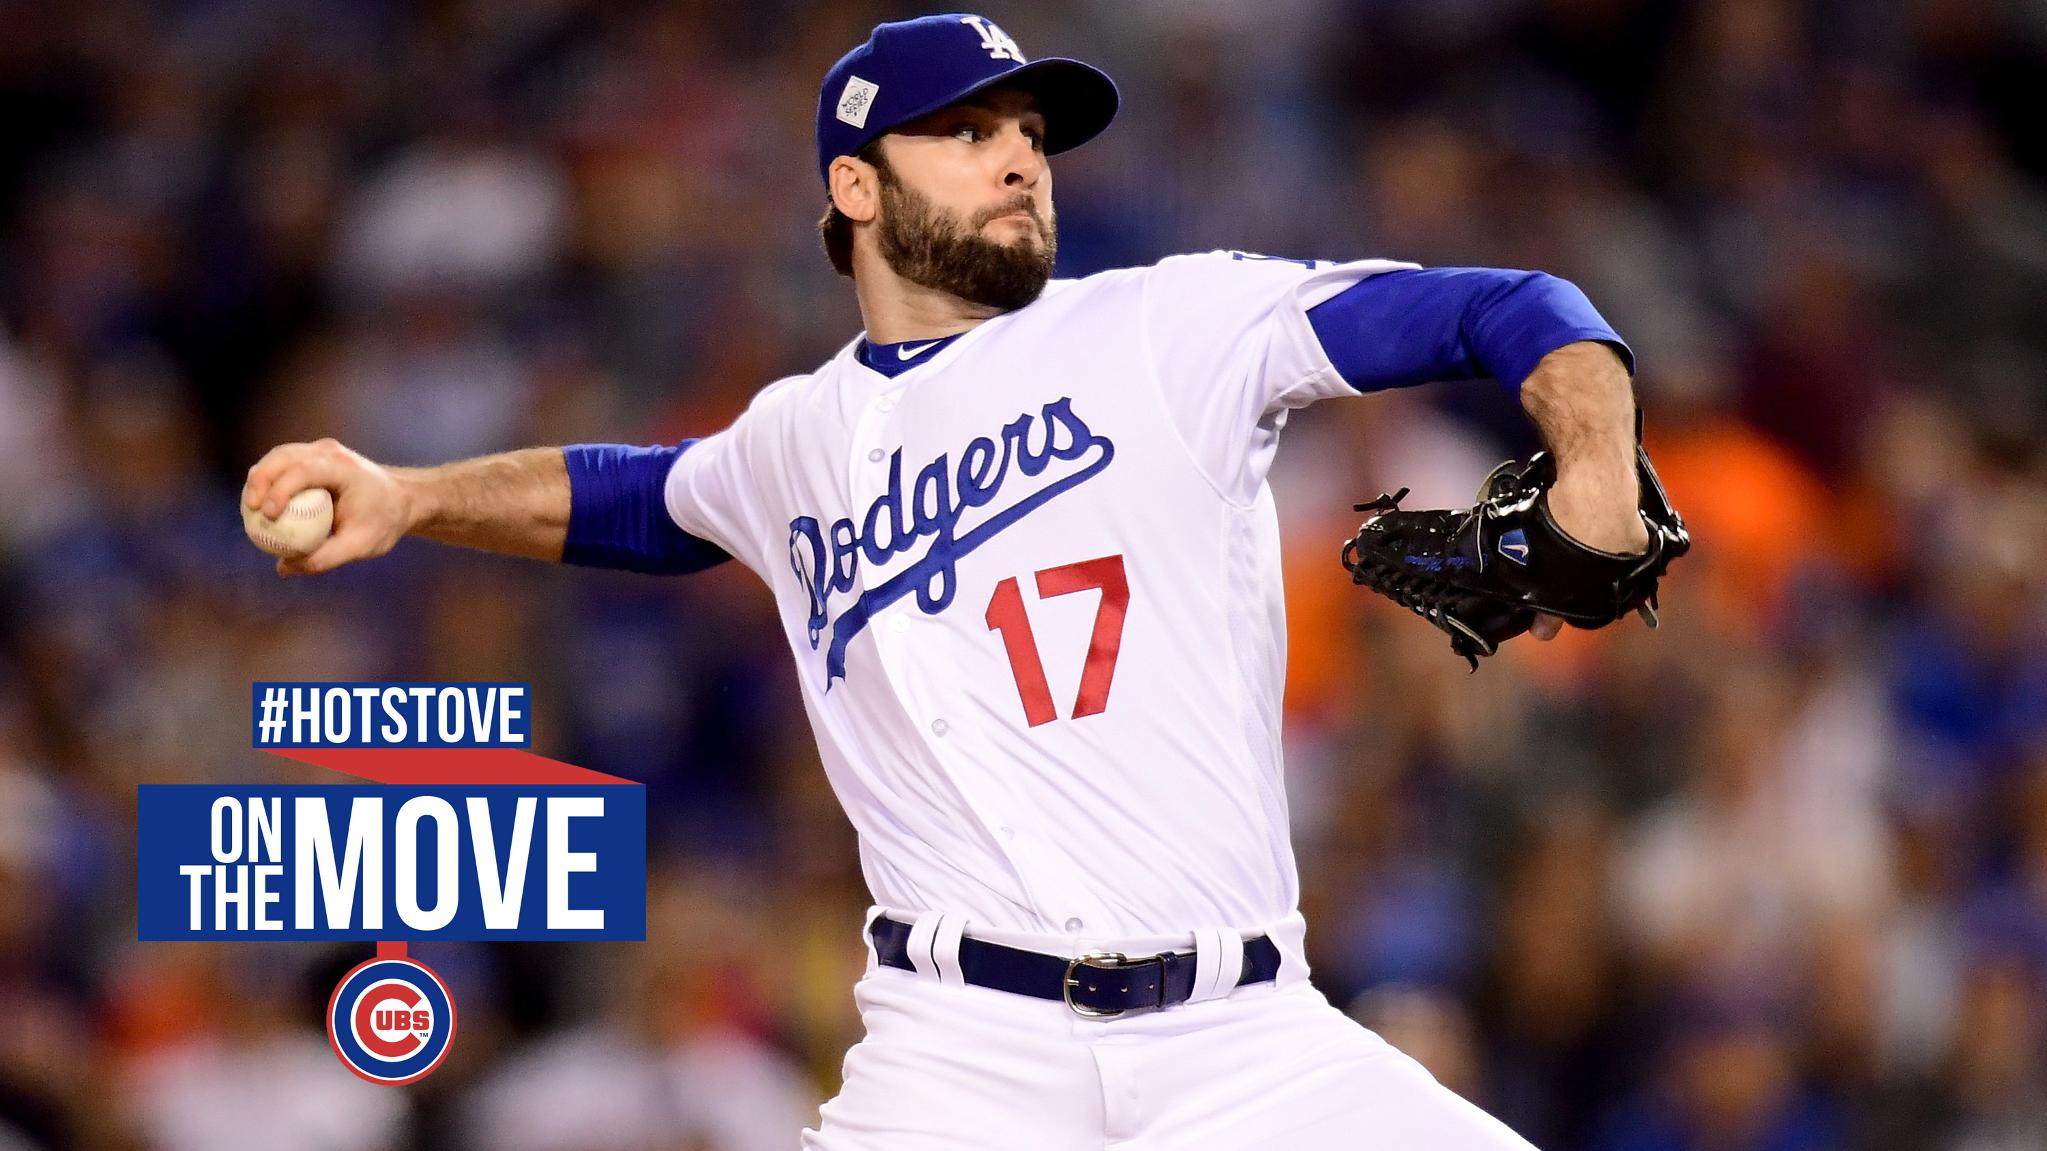 .@Cubs nearing deal with RHP Brandon Morrow. Club hasn't confirmed. https://t.co/L9Y26nQWlr https://t.co/PzABgnjny8